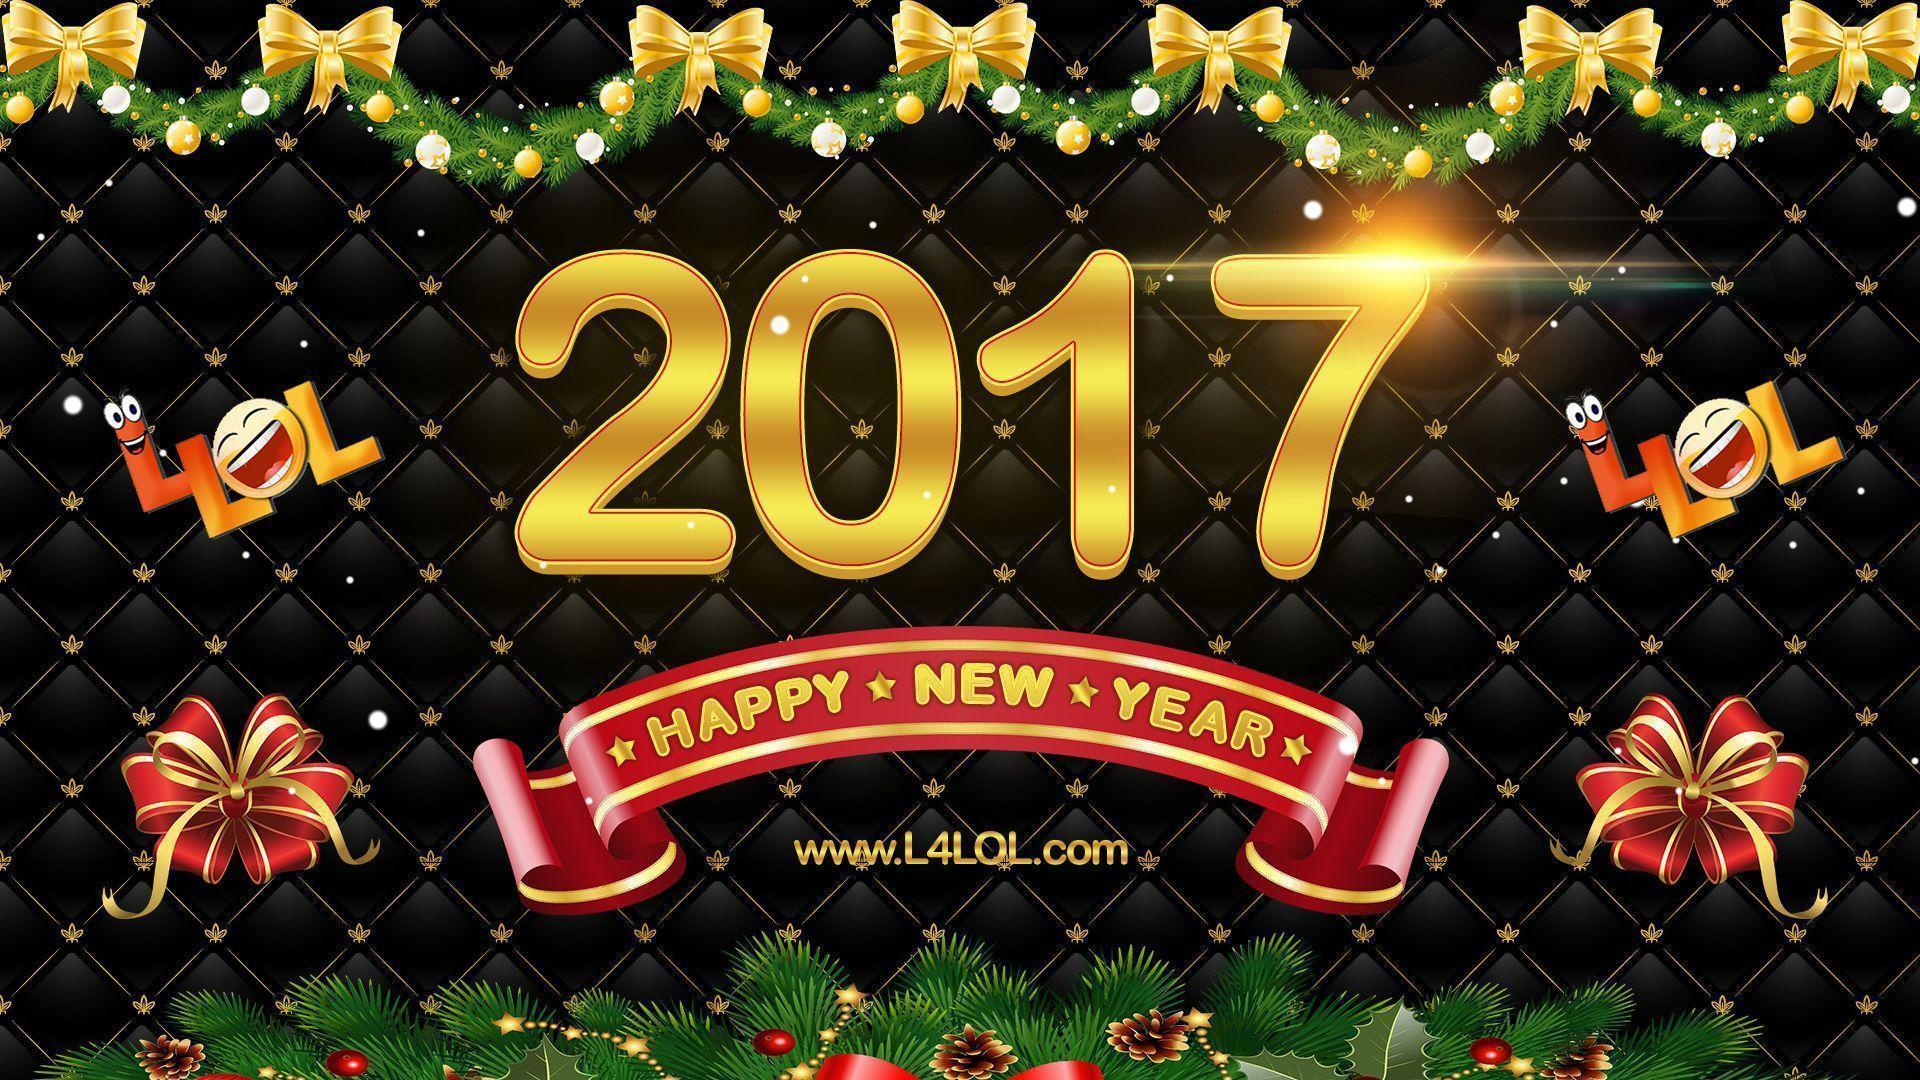 Happy New Year 2017 Wallpapers Free - Wallpaper Cave